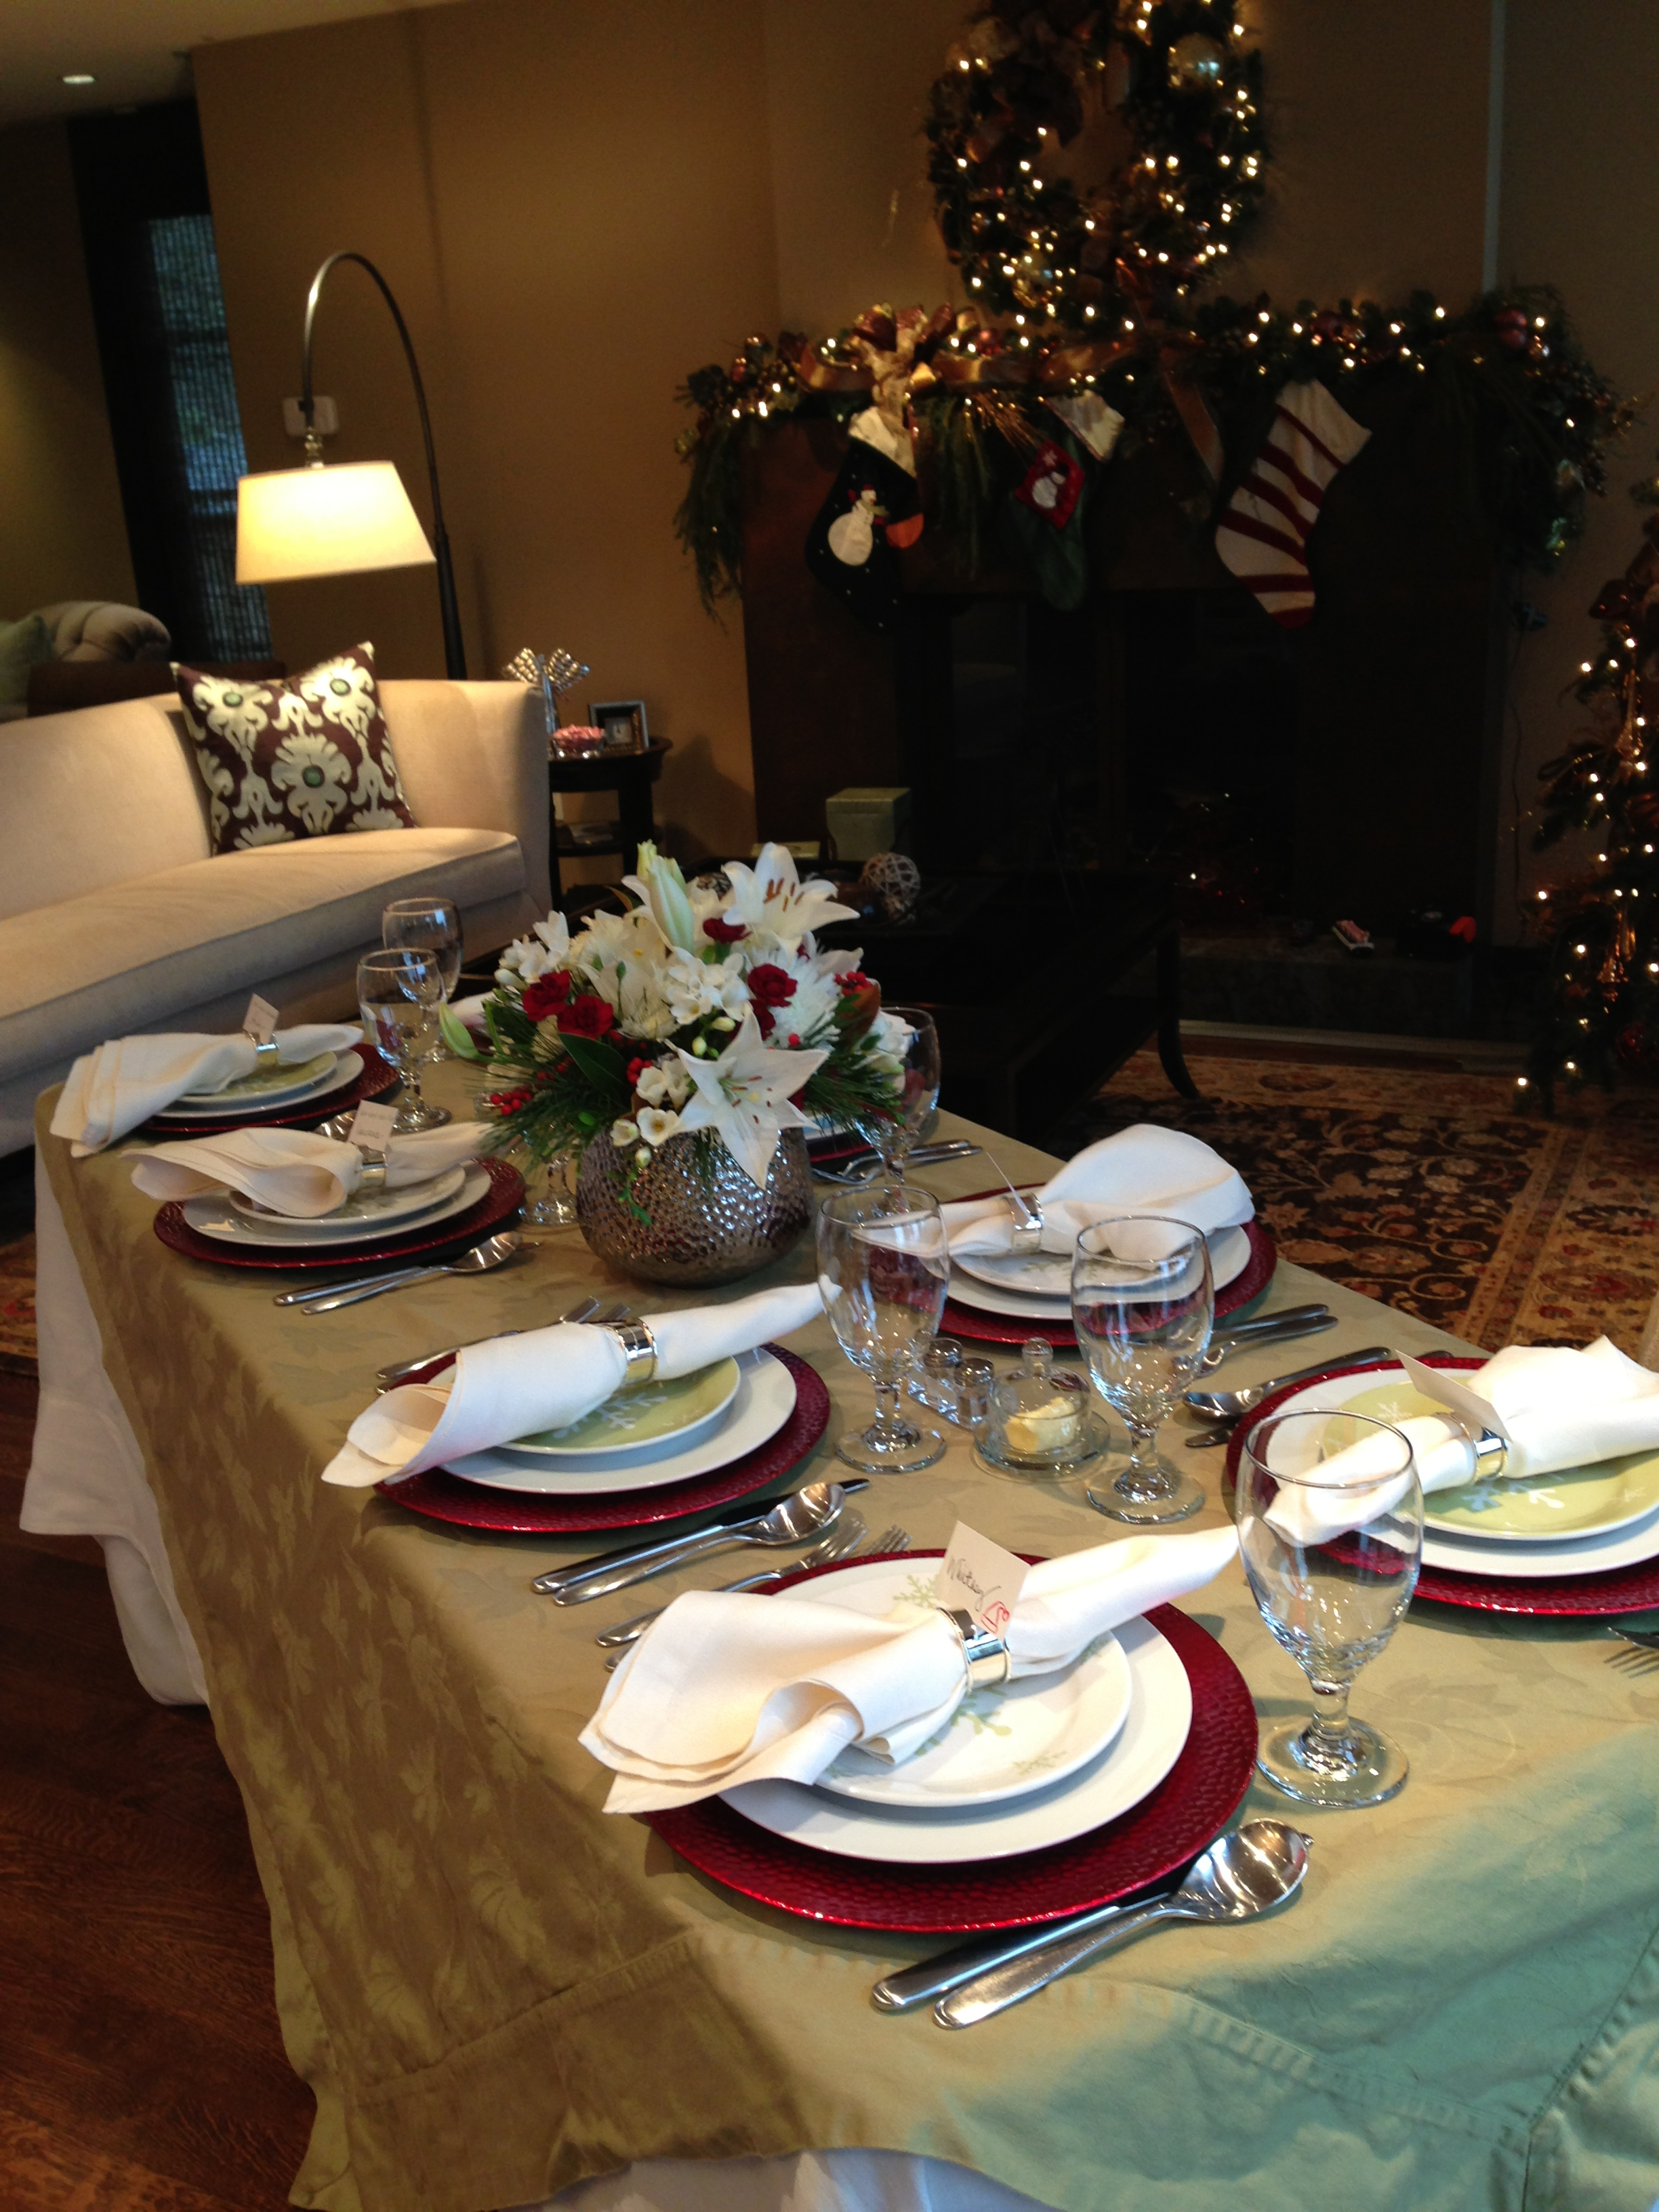 ... image of table set for christmas with golds and cranberries & A beautiful Christmas table | Tobey Nelson Weddings + Events